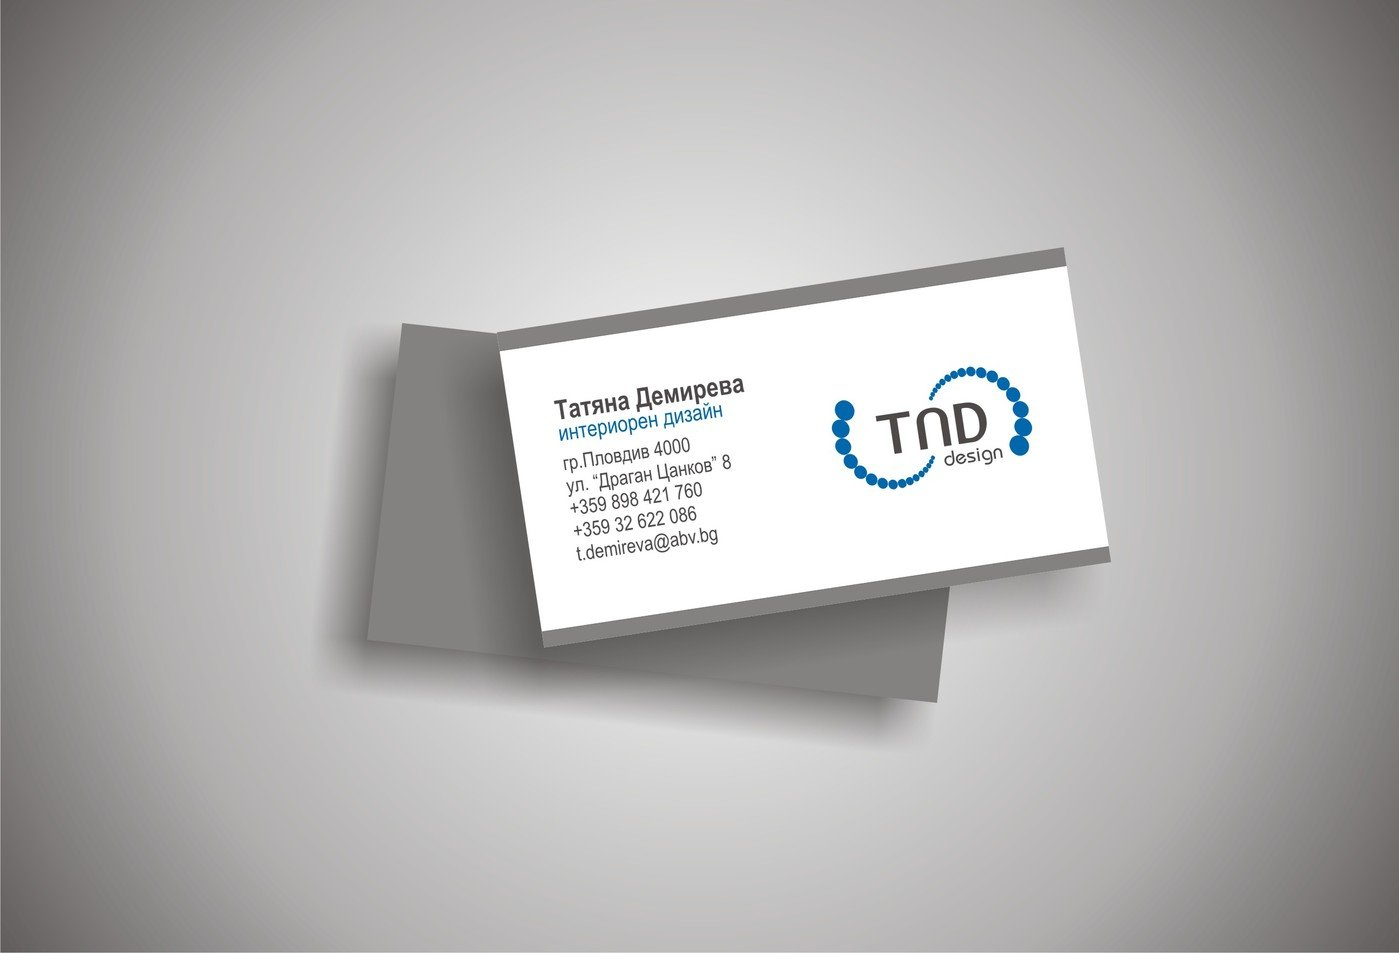 Print design by antonia marina at coroflot tnd design a studio for interior design design of a business card for tnd design a studio for interior design two sided size 90 mm x 50 mm magicingreecefo Image collections